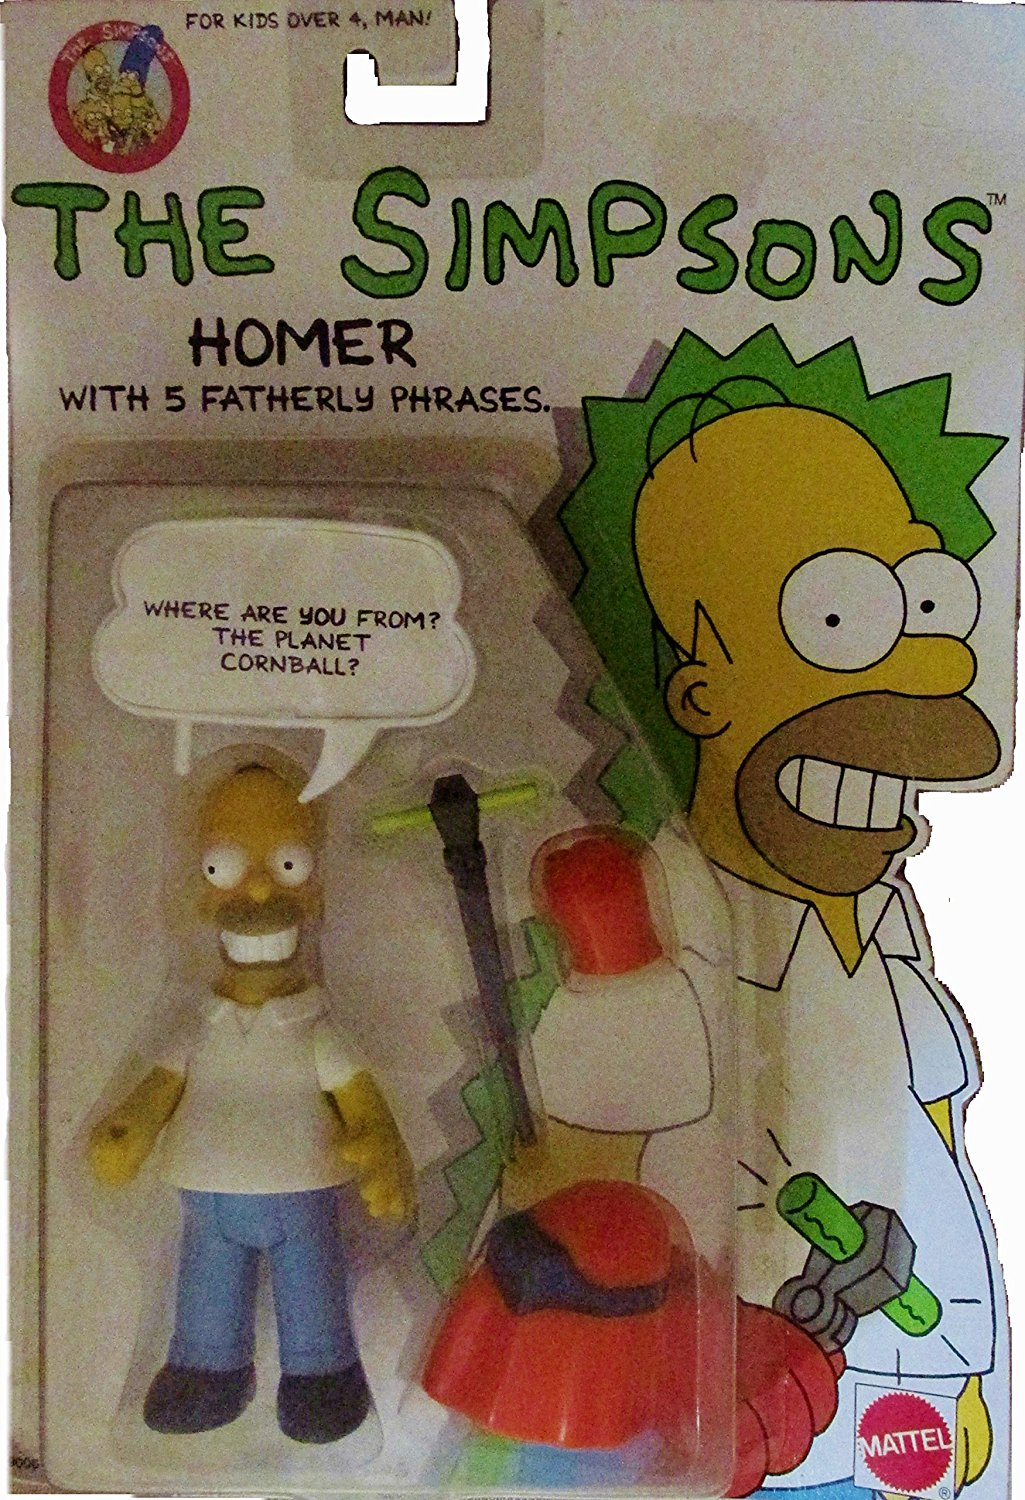 The Simpsons-Homer with 5 Fatherly Phrases 1990 Package, Figure comes with 5... by